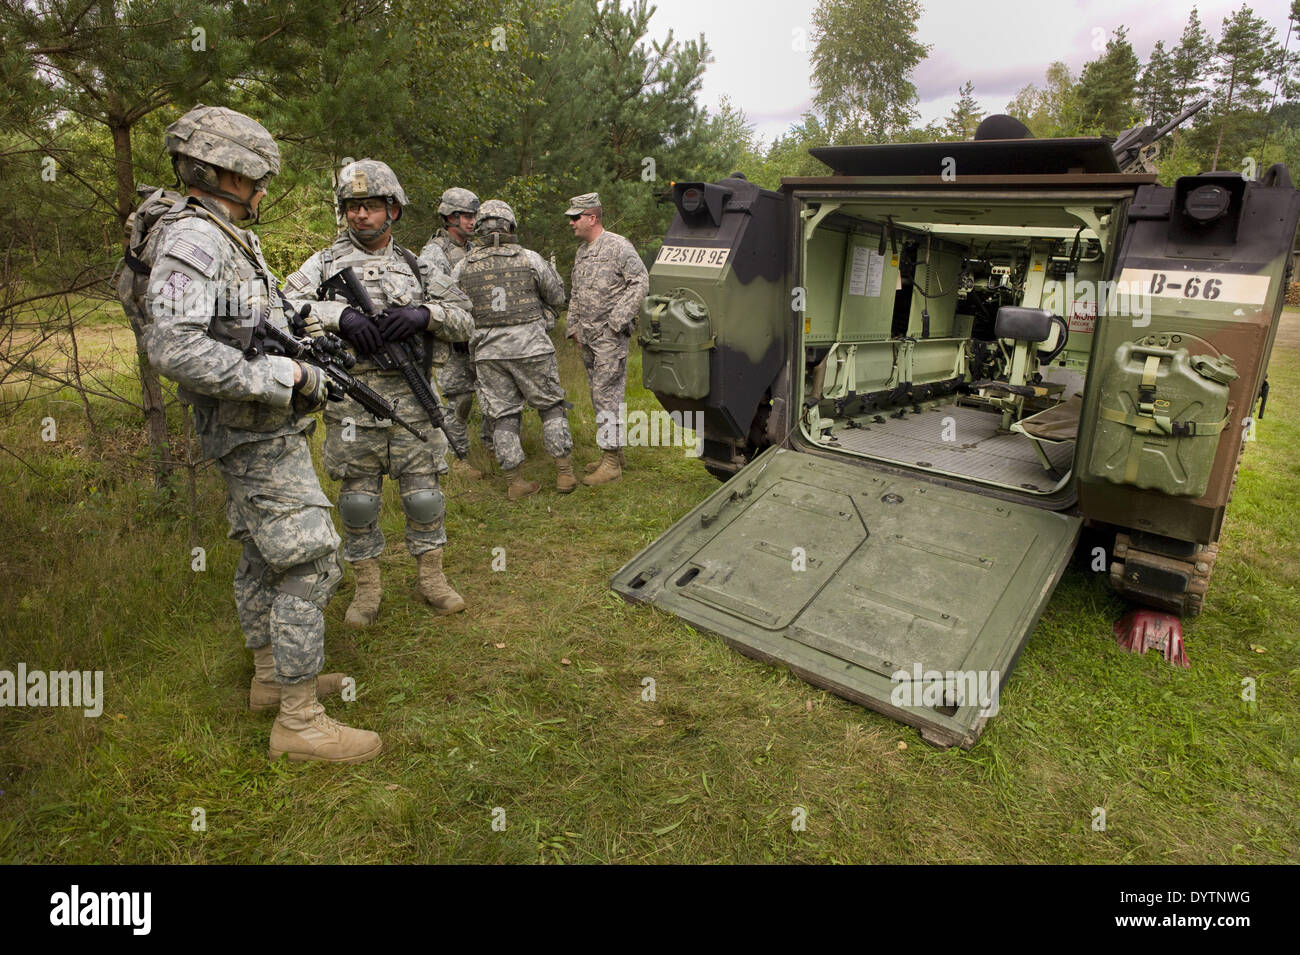 An armored personnel carrier of the U. S. Army - Stock Image